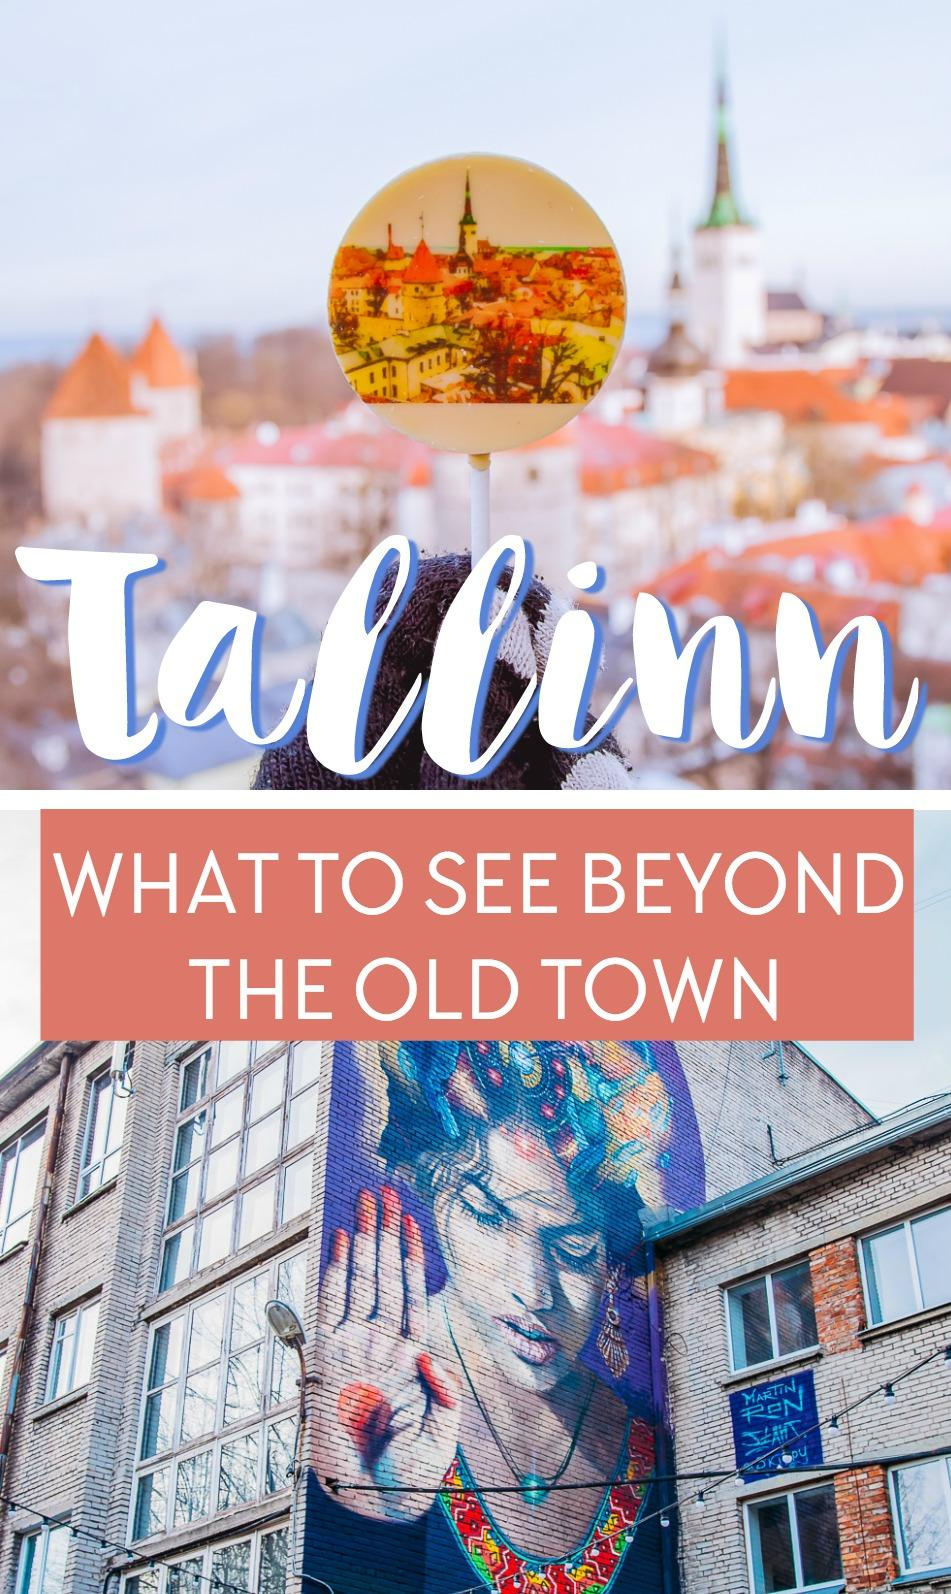 If you're heading on a day (or longer) trip to Tallinn and want to see the city beyond the Old Town, check out Kalamaja and Telliskivi! Here's what you need to check out: